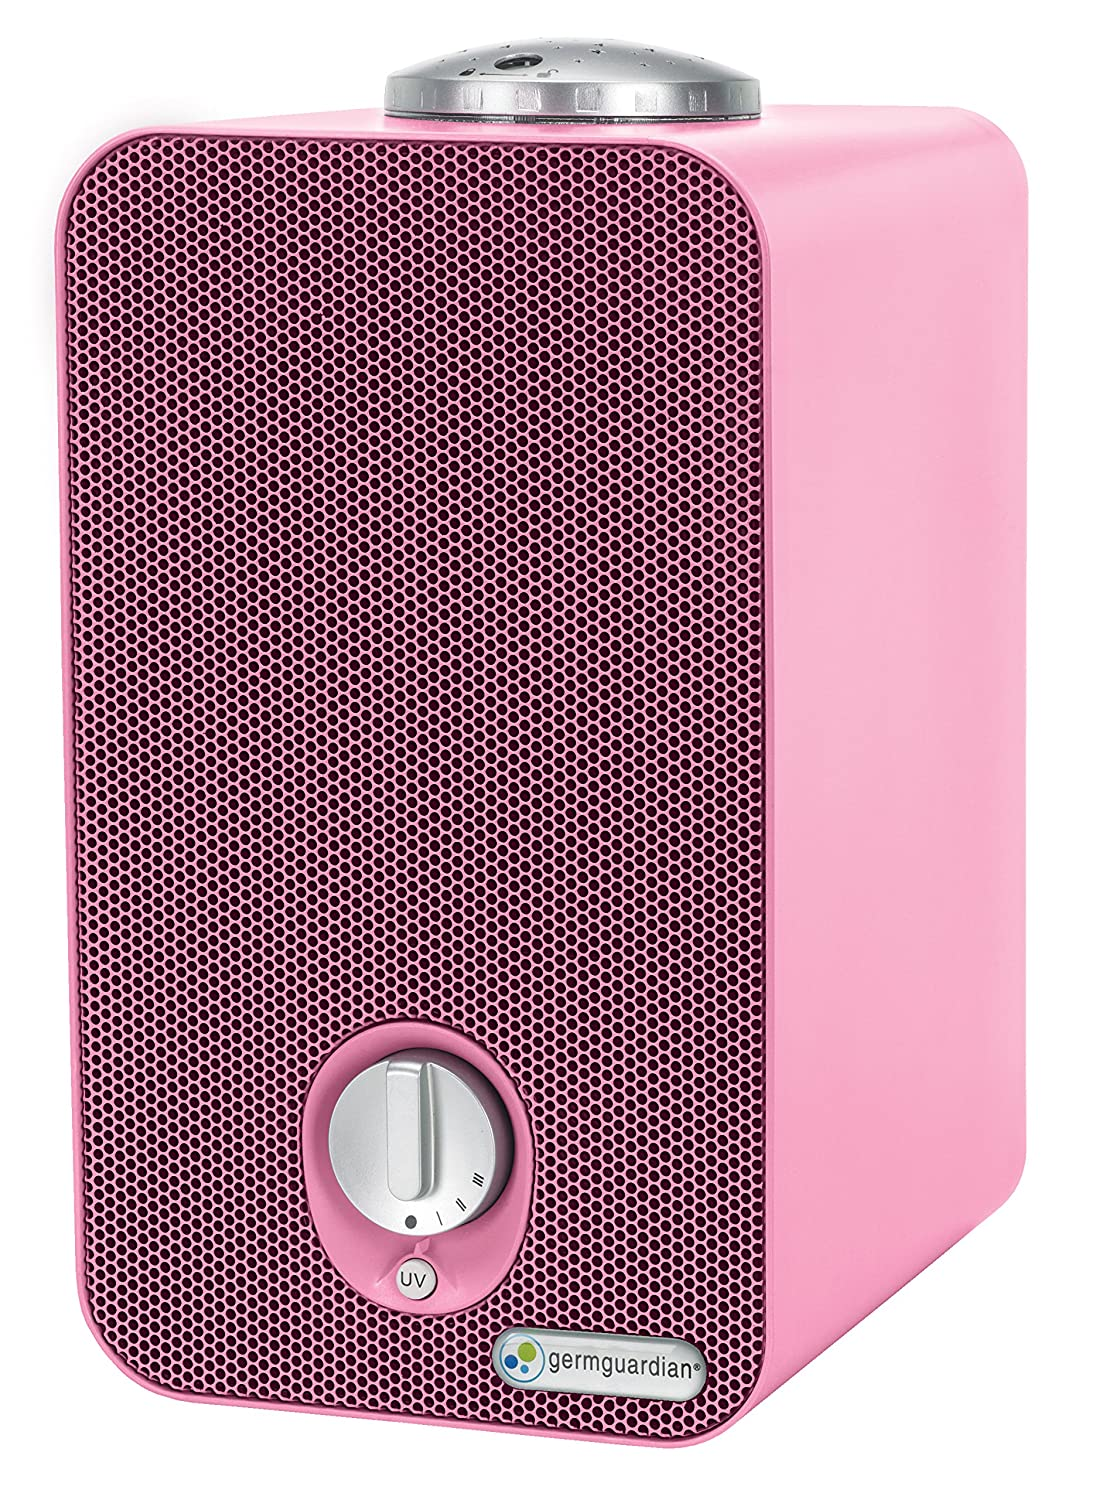 GermGuardian AC4150PCA 4-in-1 Kids Room Air Purifier, HEPA Filter, UVC Sanitizer, Air Cleaner Traps Allergens, Pollen, Odors, Mold, Dust, Germs, Smoke, Pet Dander, Night Light Projector, Germ Guardian Guardian Technologies